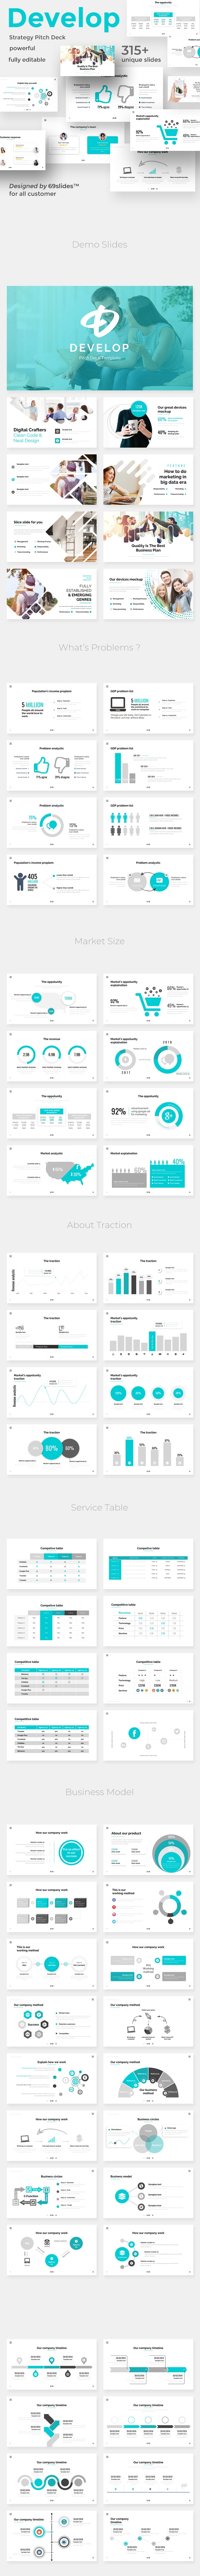 Develop Strategy Pitch Deck Powerpoint Template - Business PowerPoint Templates